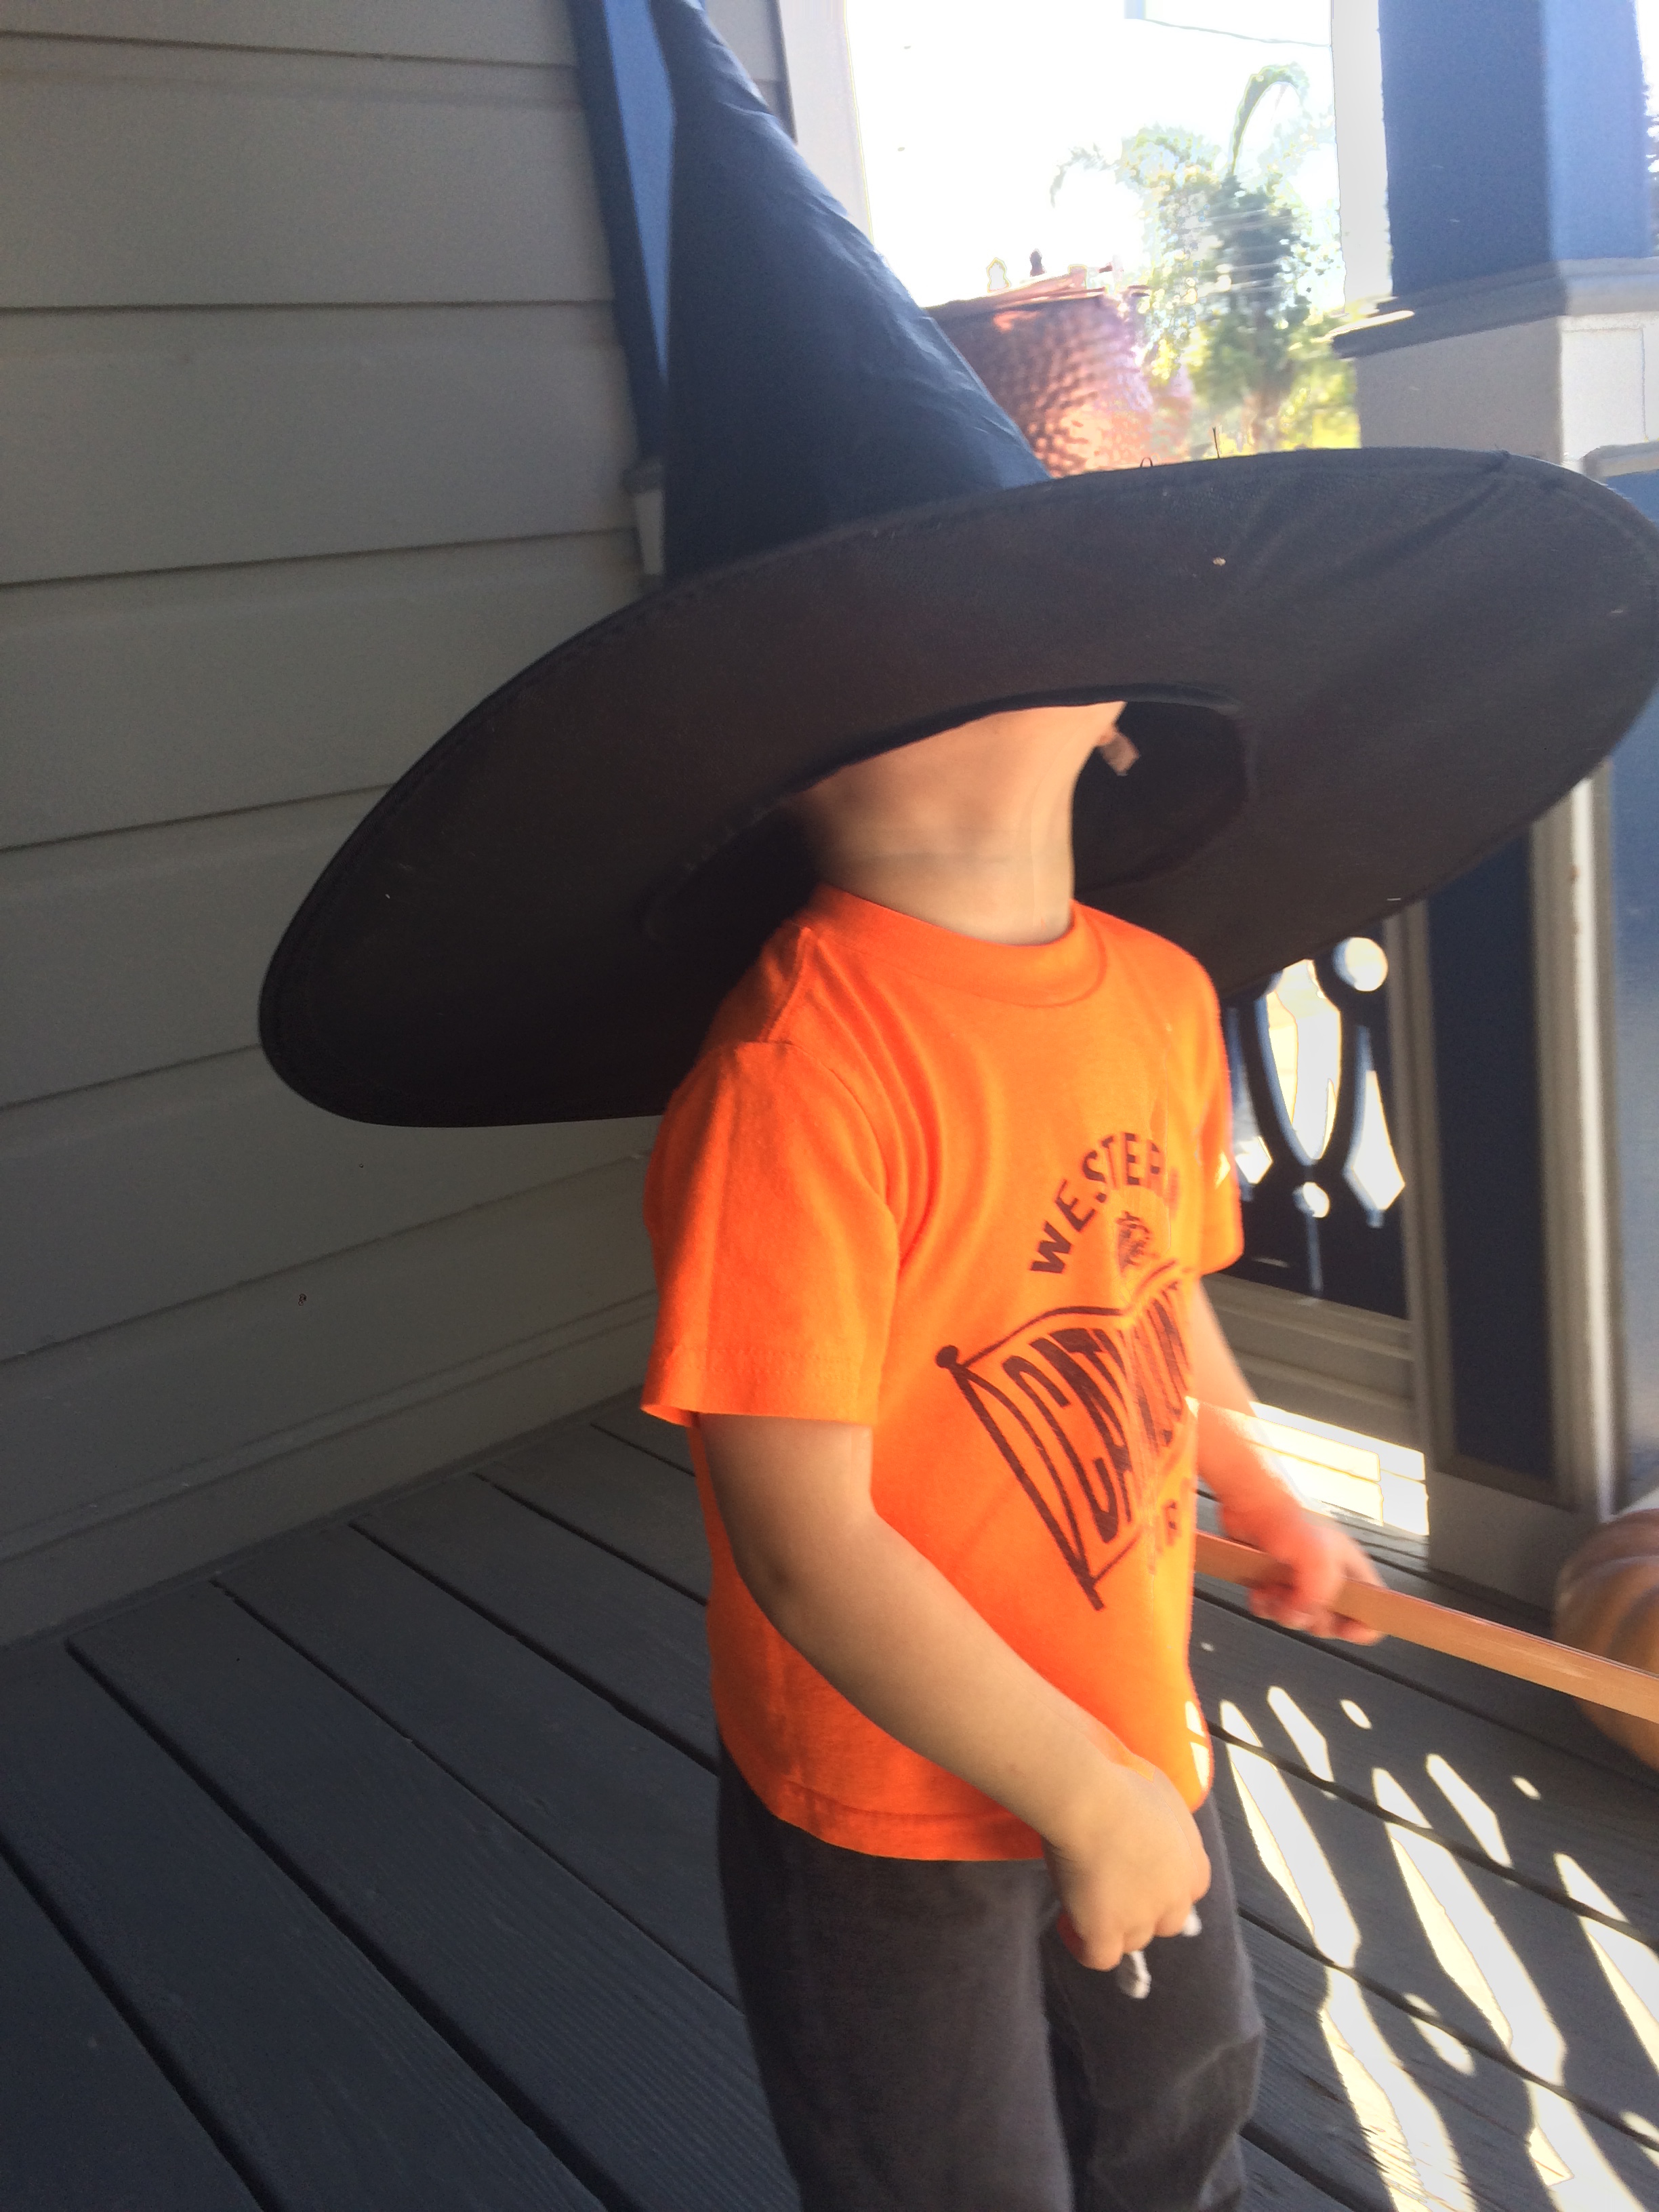 Witches be scary, y'all. Especially when they are 3 feet tall and faceless.